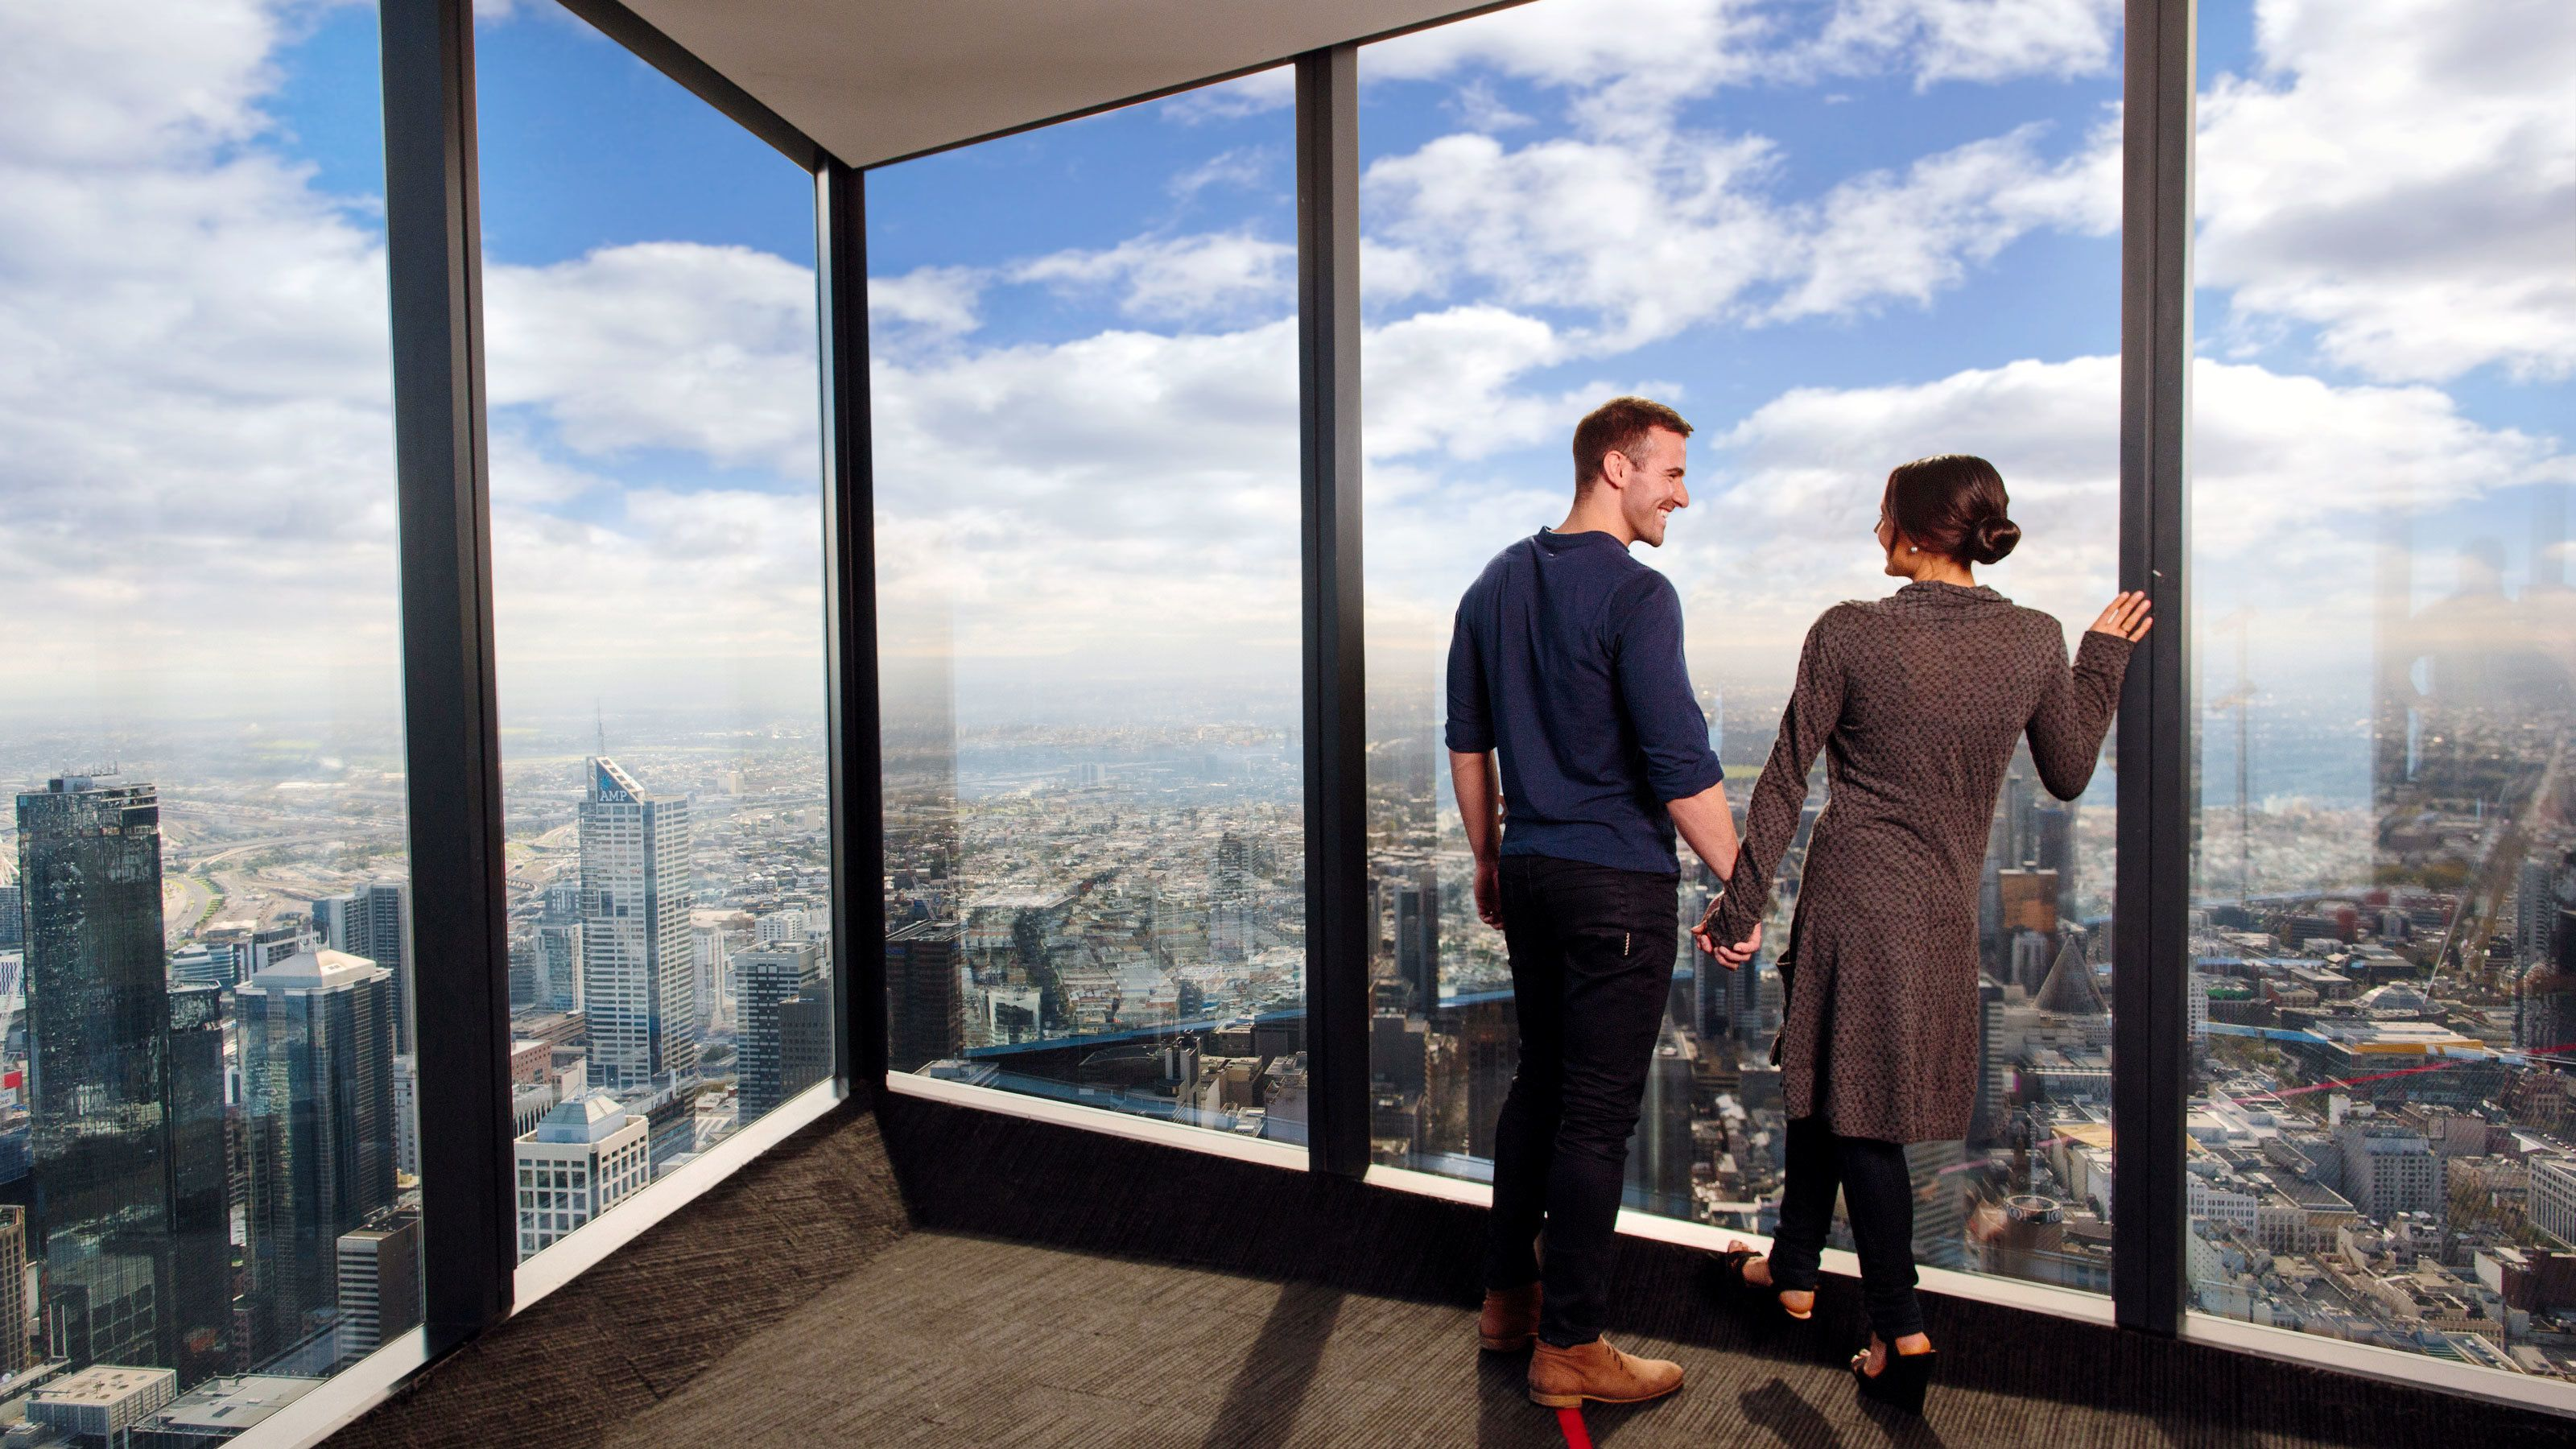 Couple looking out the large glass windows at the city from the Eureka Skydeck in Melbourne